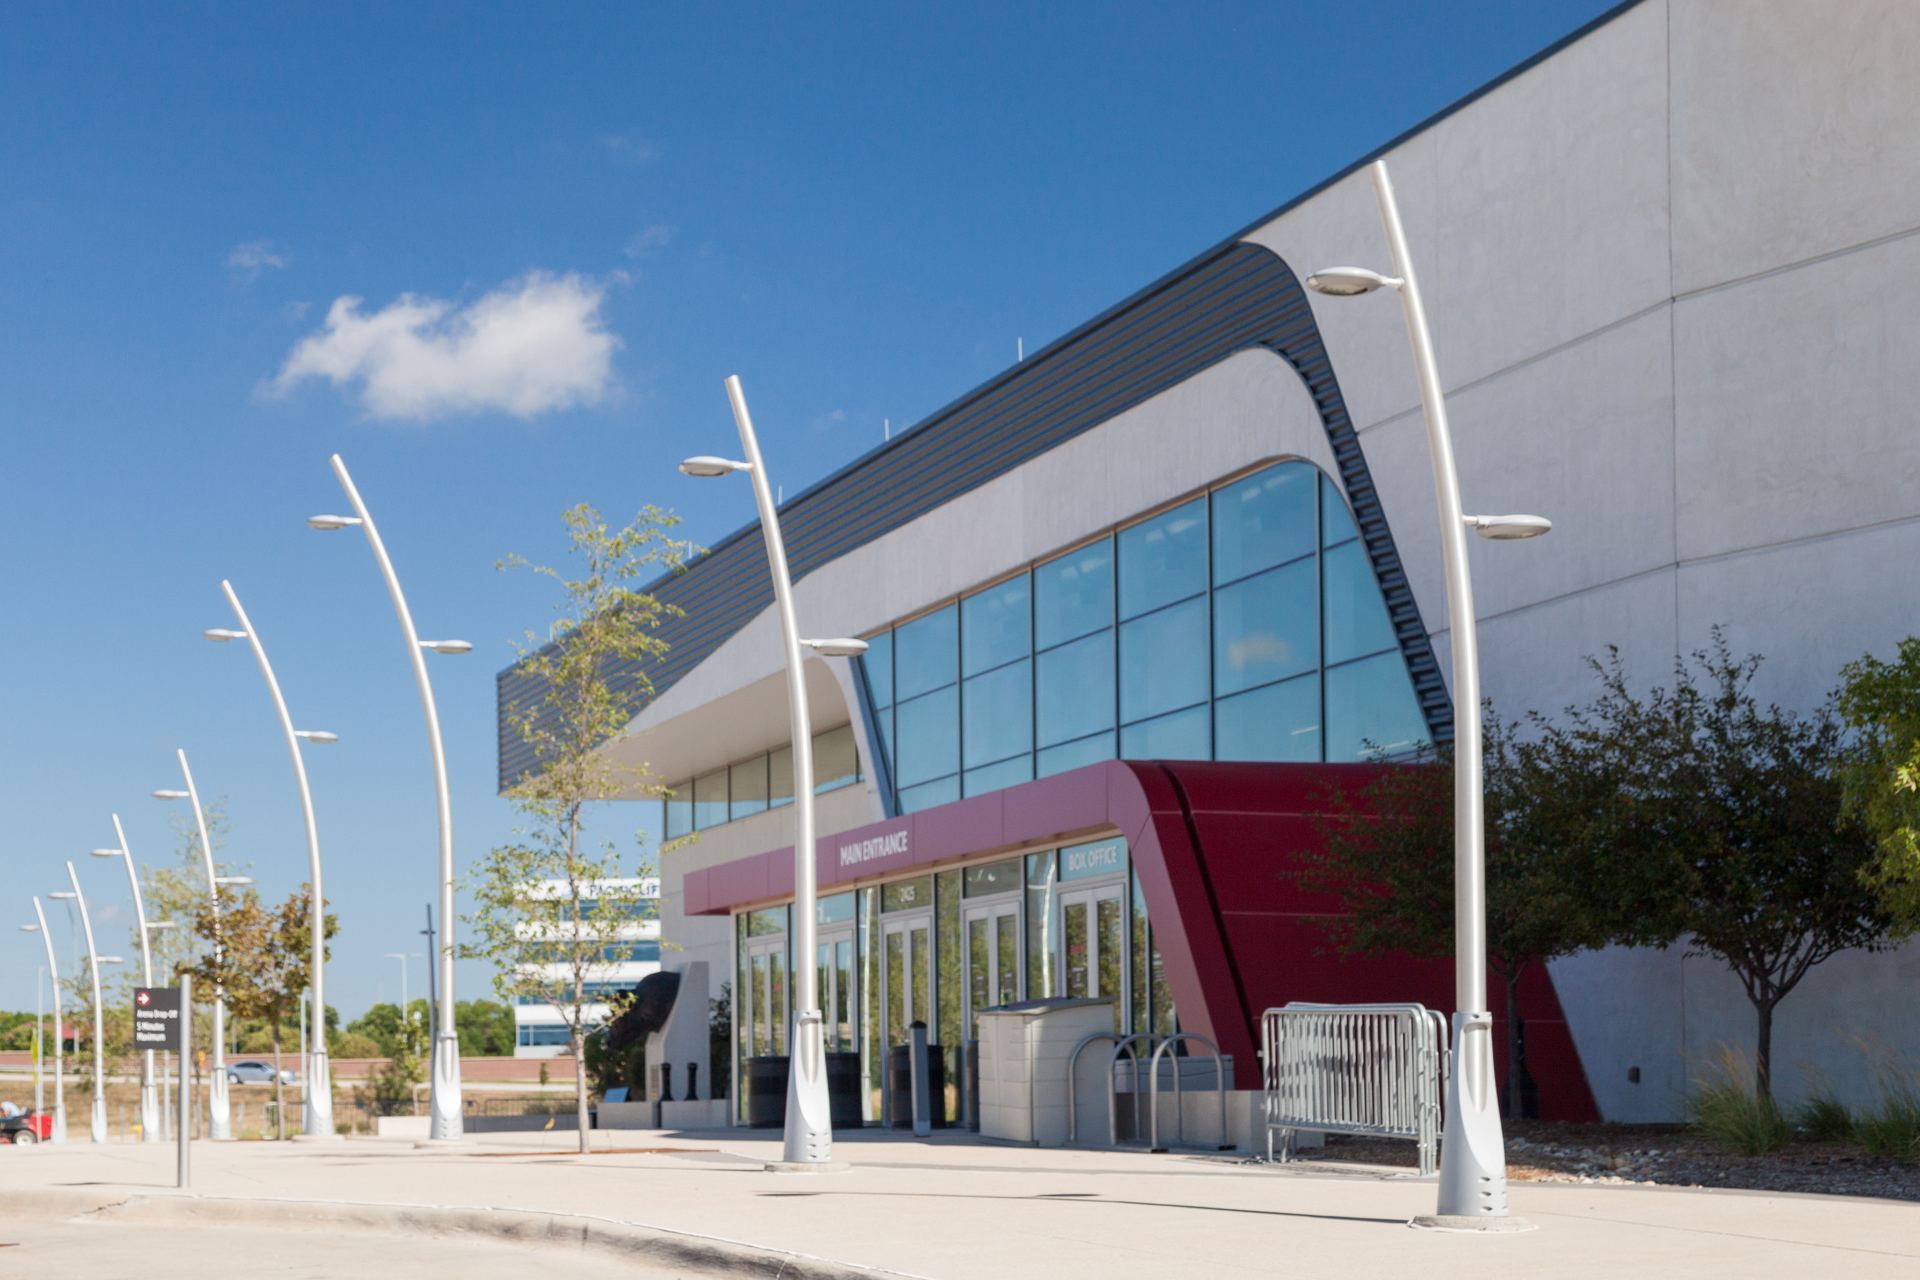 The exterior walkways at the Baxter Arena featuring our Flight Pole with mounted LED fixtures. These poles come in multiple luminaire arm mounting options.